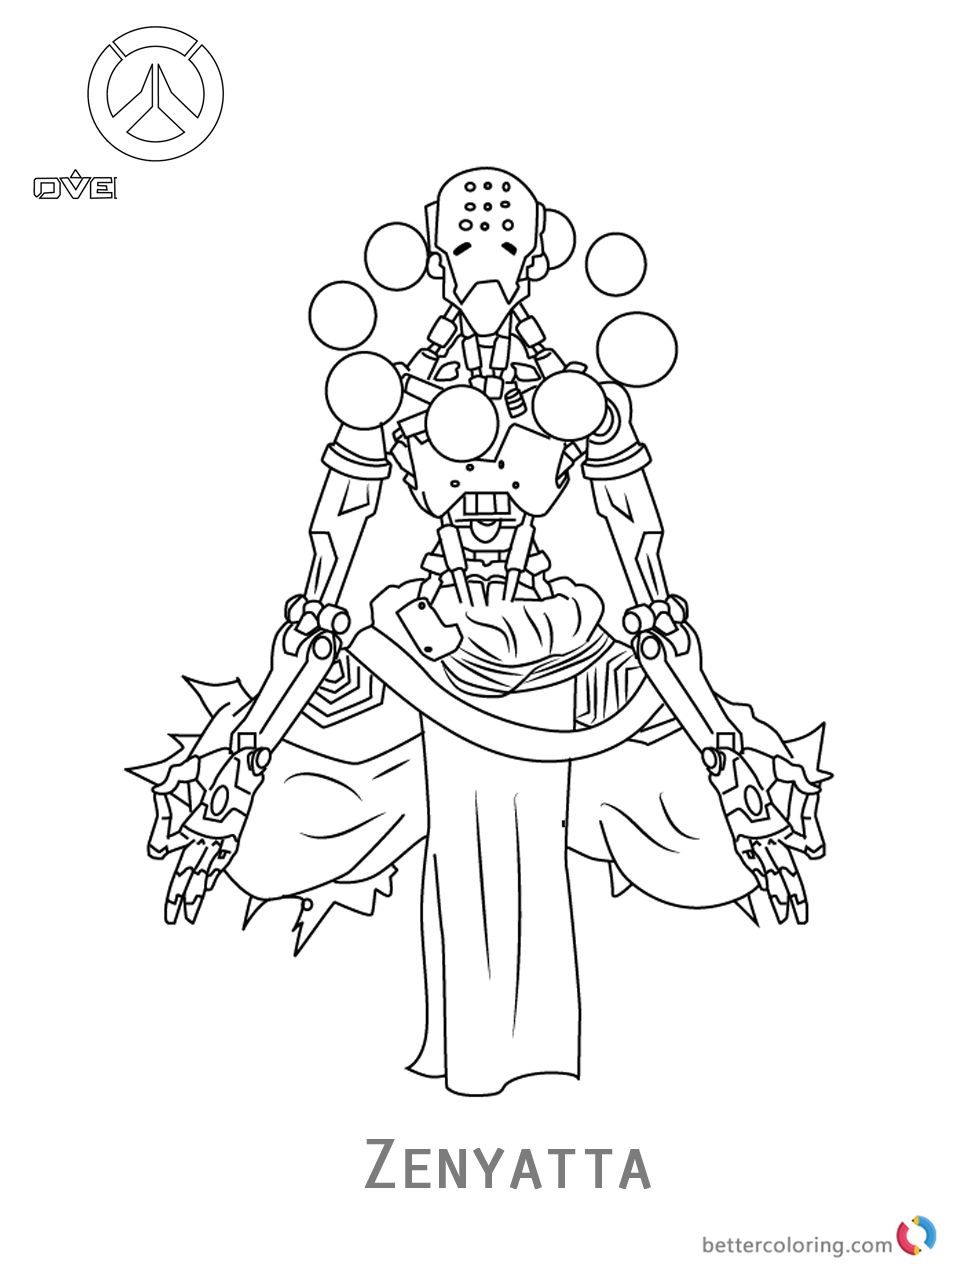 Zenyatta from Overwatch coloring pages printable